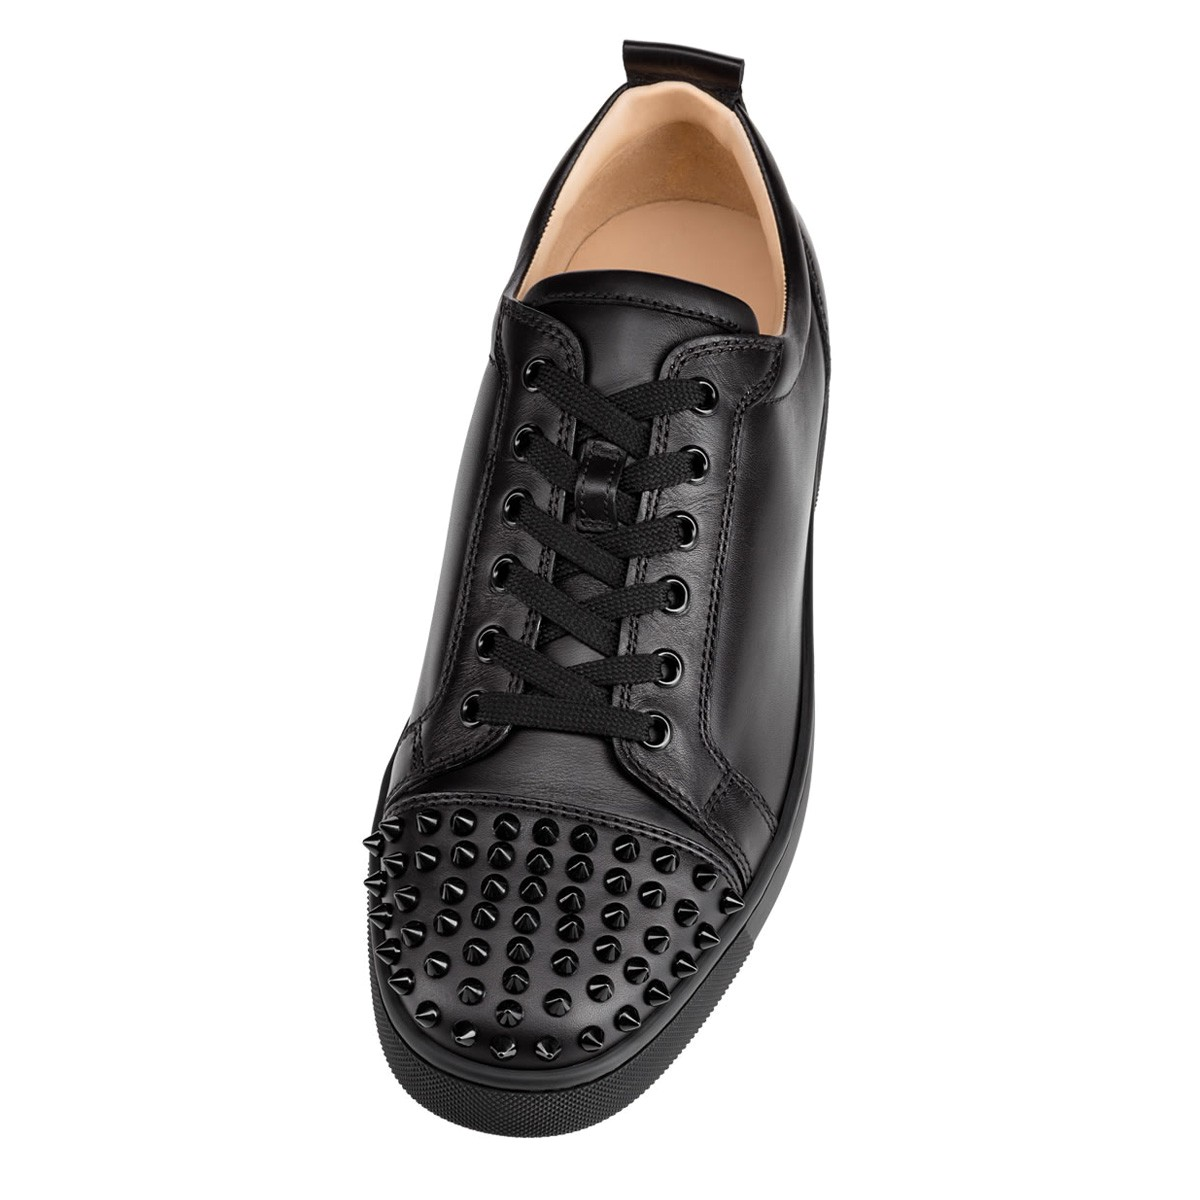 2678ea0cc67 Louis Junior Spikes Black/Black Leather - Men Shoes - Christian Louboutin